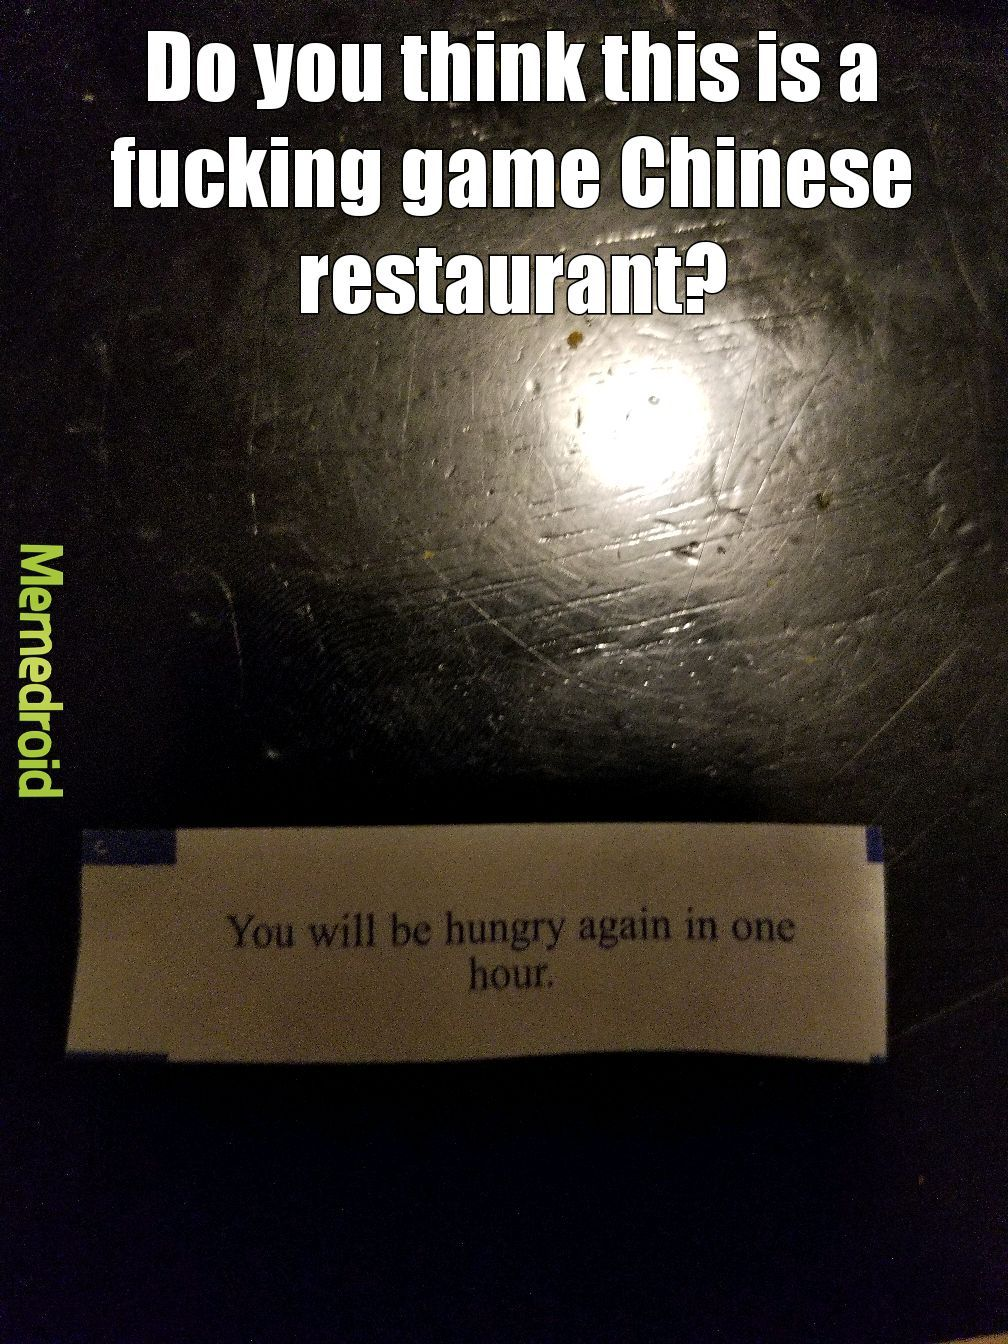 Fortune cookie fuck up - meme